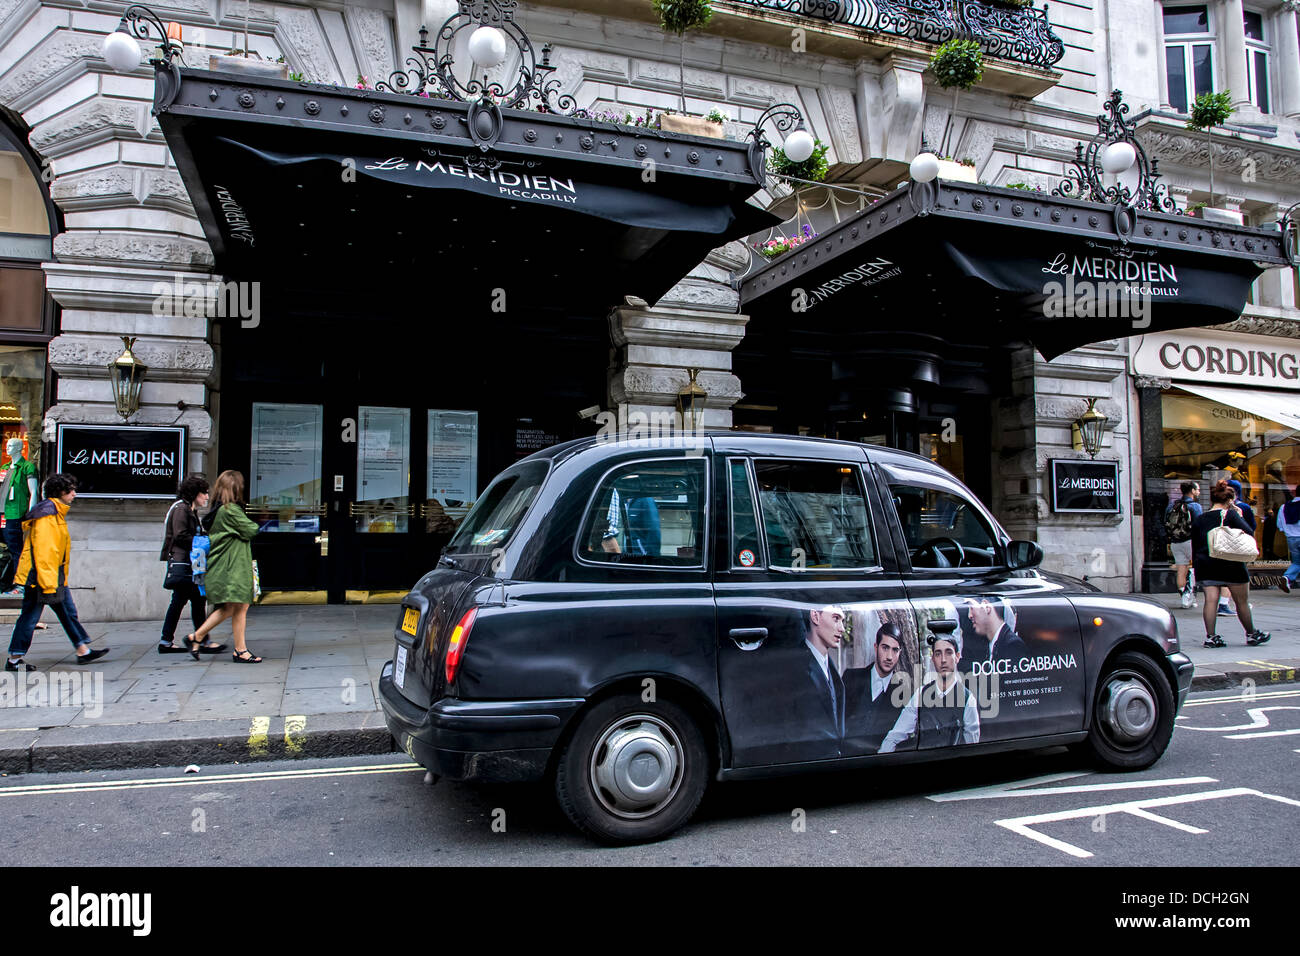 London Taxi Awaiting Fare Outside Meridian Hotel in Piccadilly - Stock Image